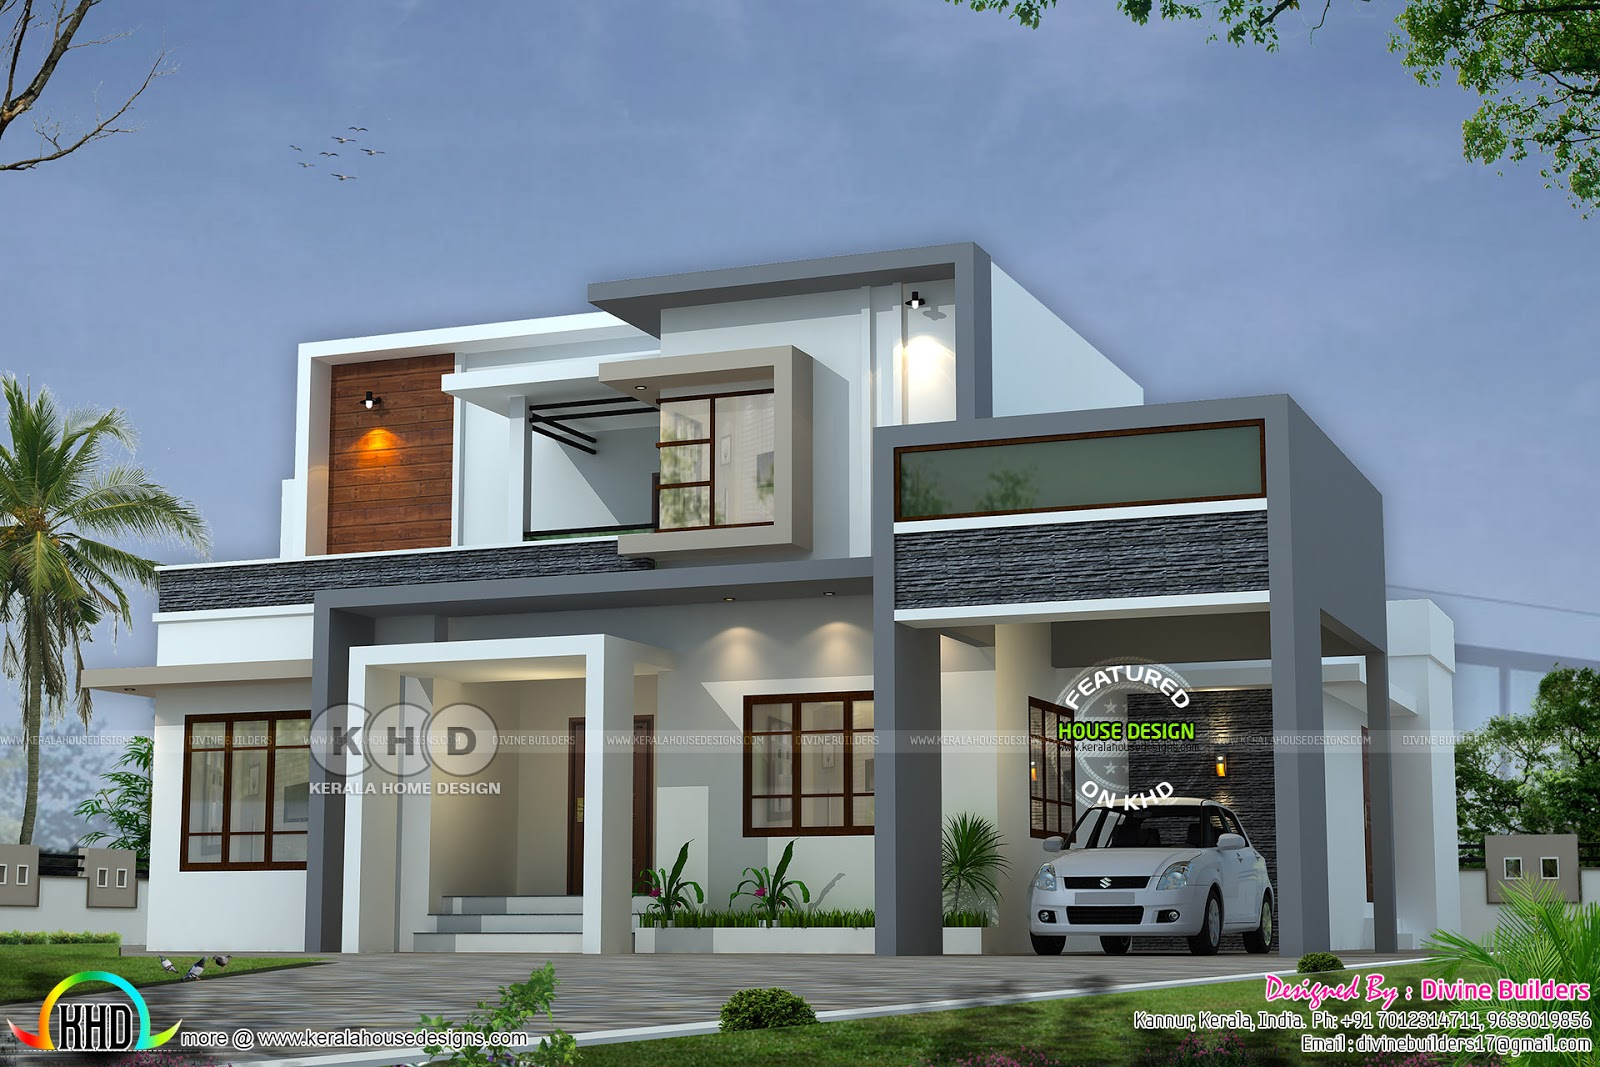 2017 kerala home design and floor plans for House design pic